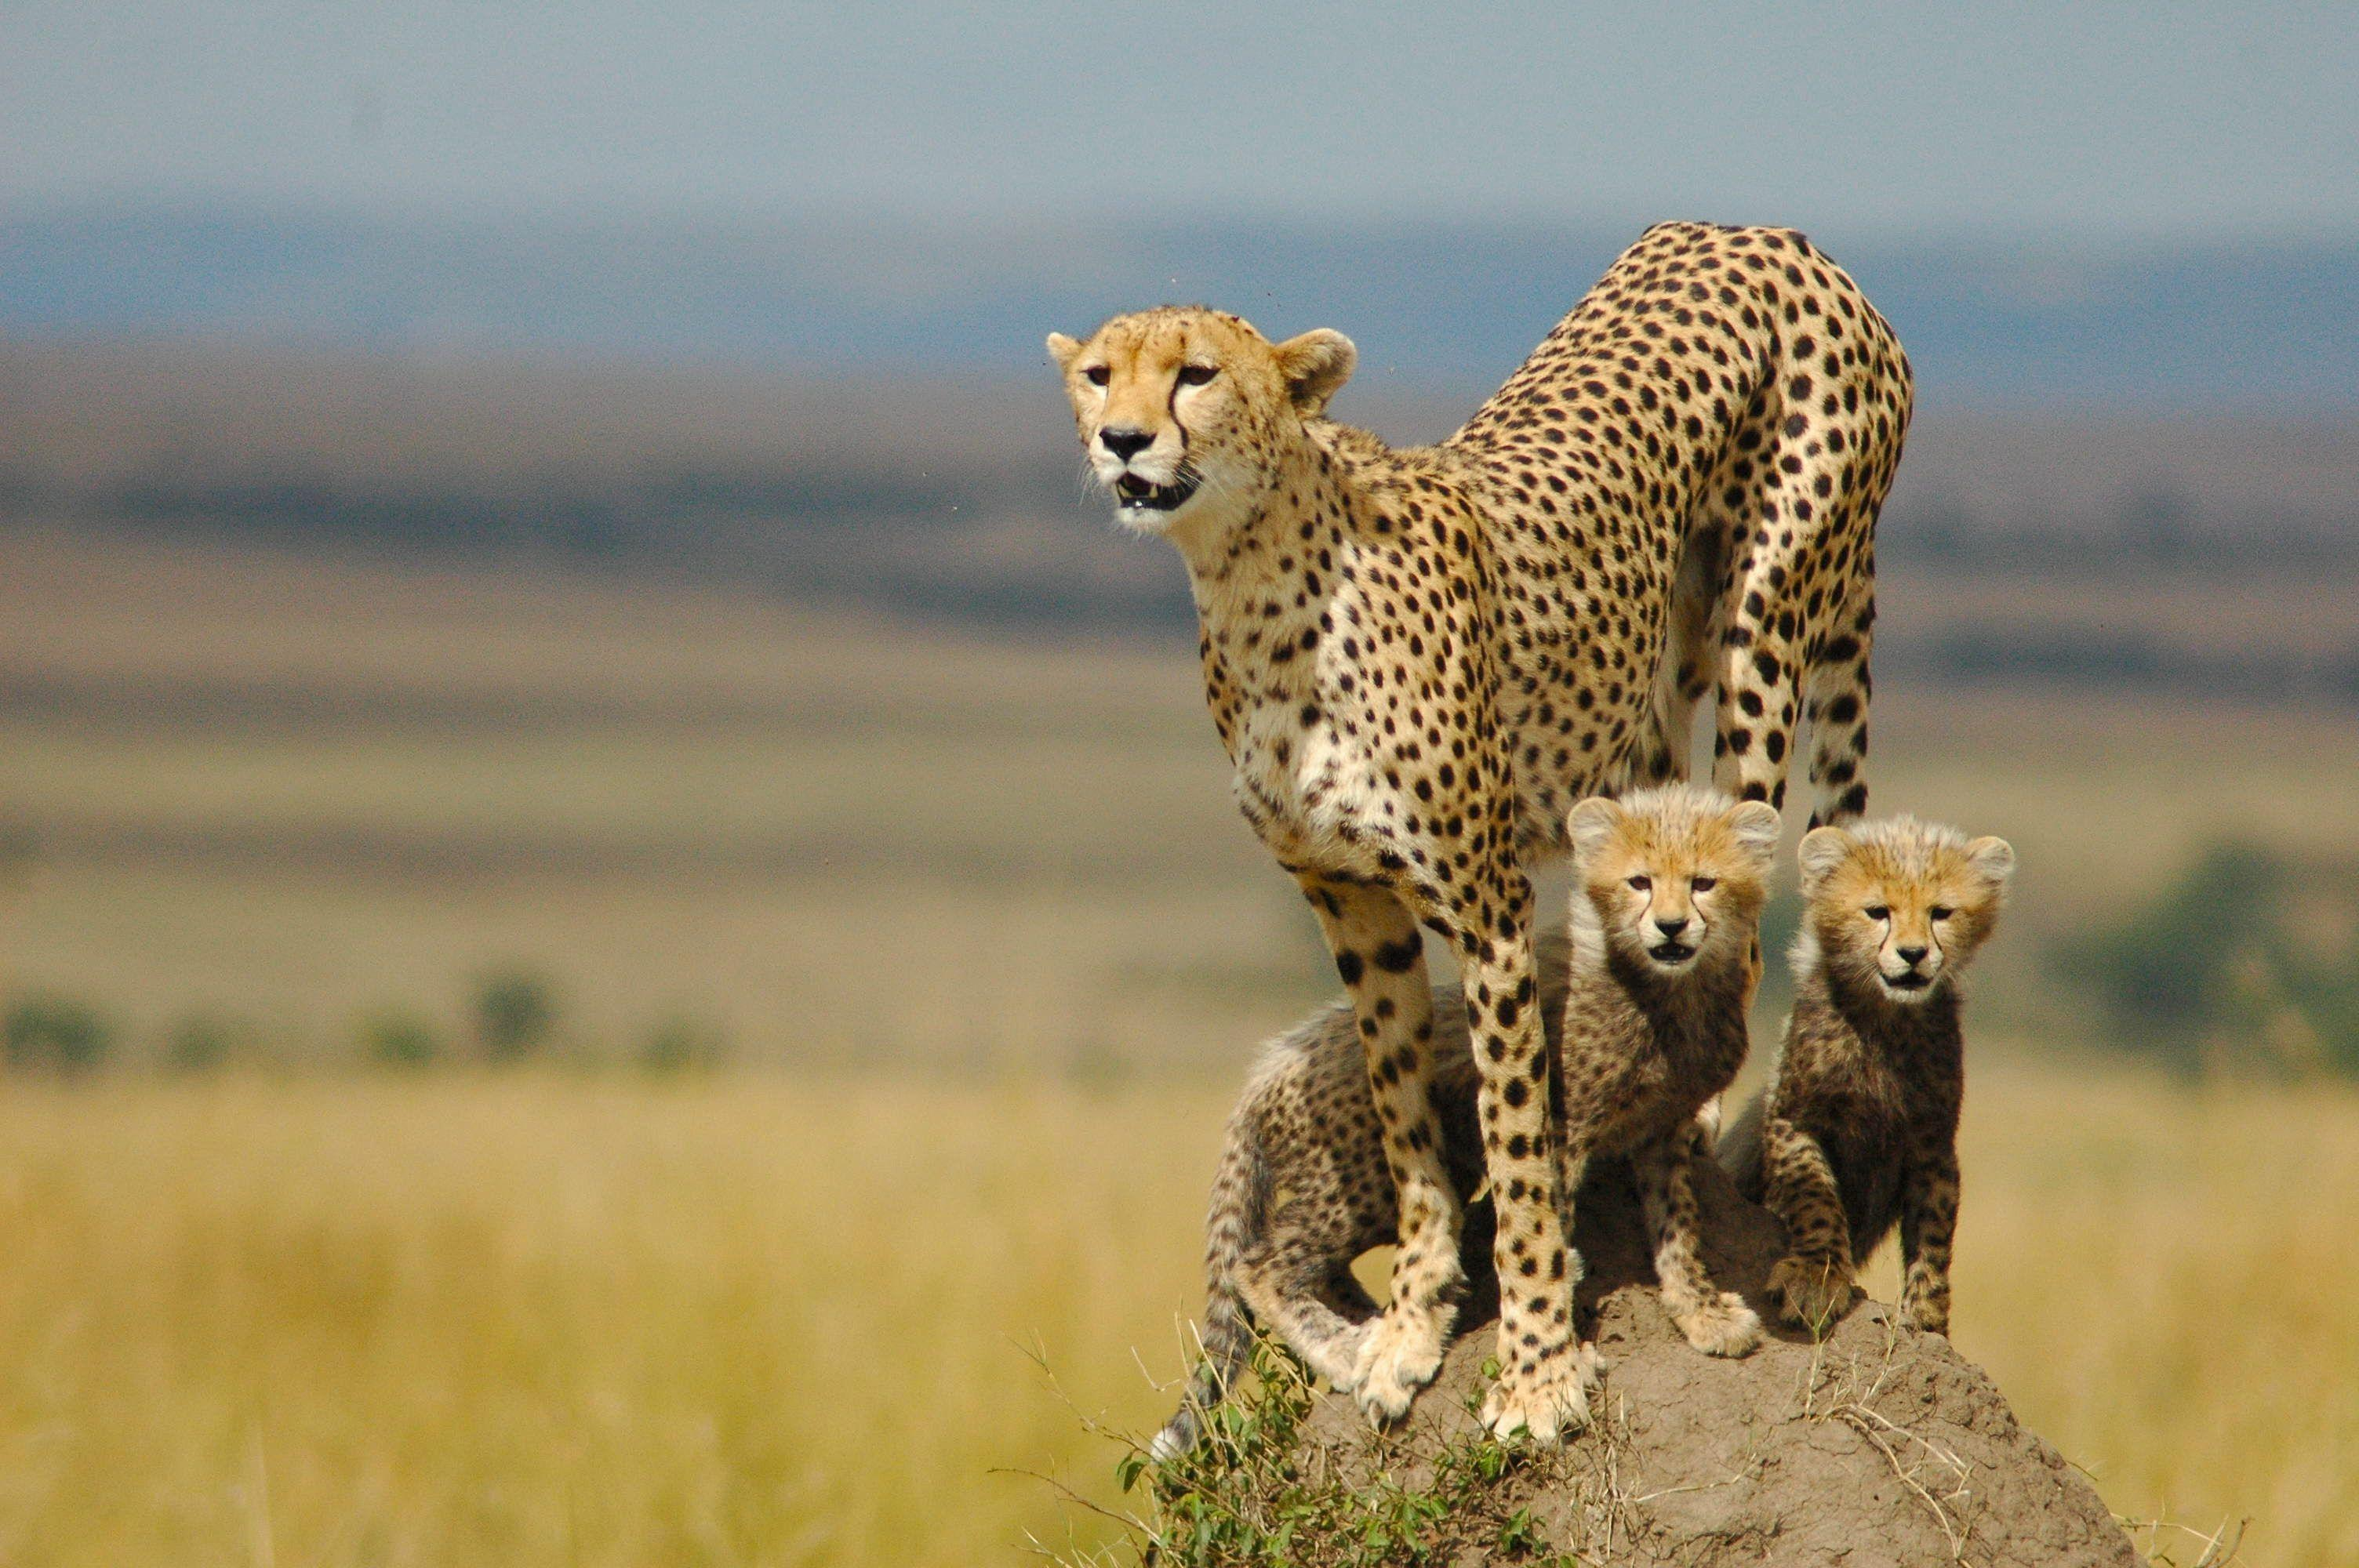 20 HD Cheetah Wallpaper | CuriositySplash